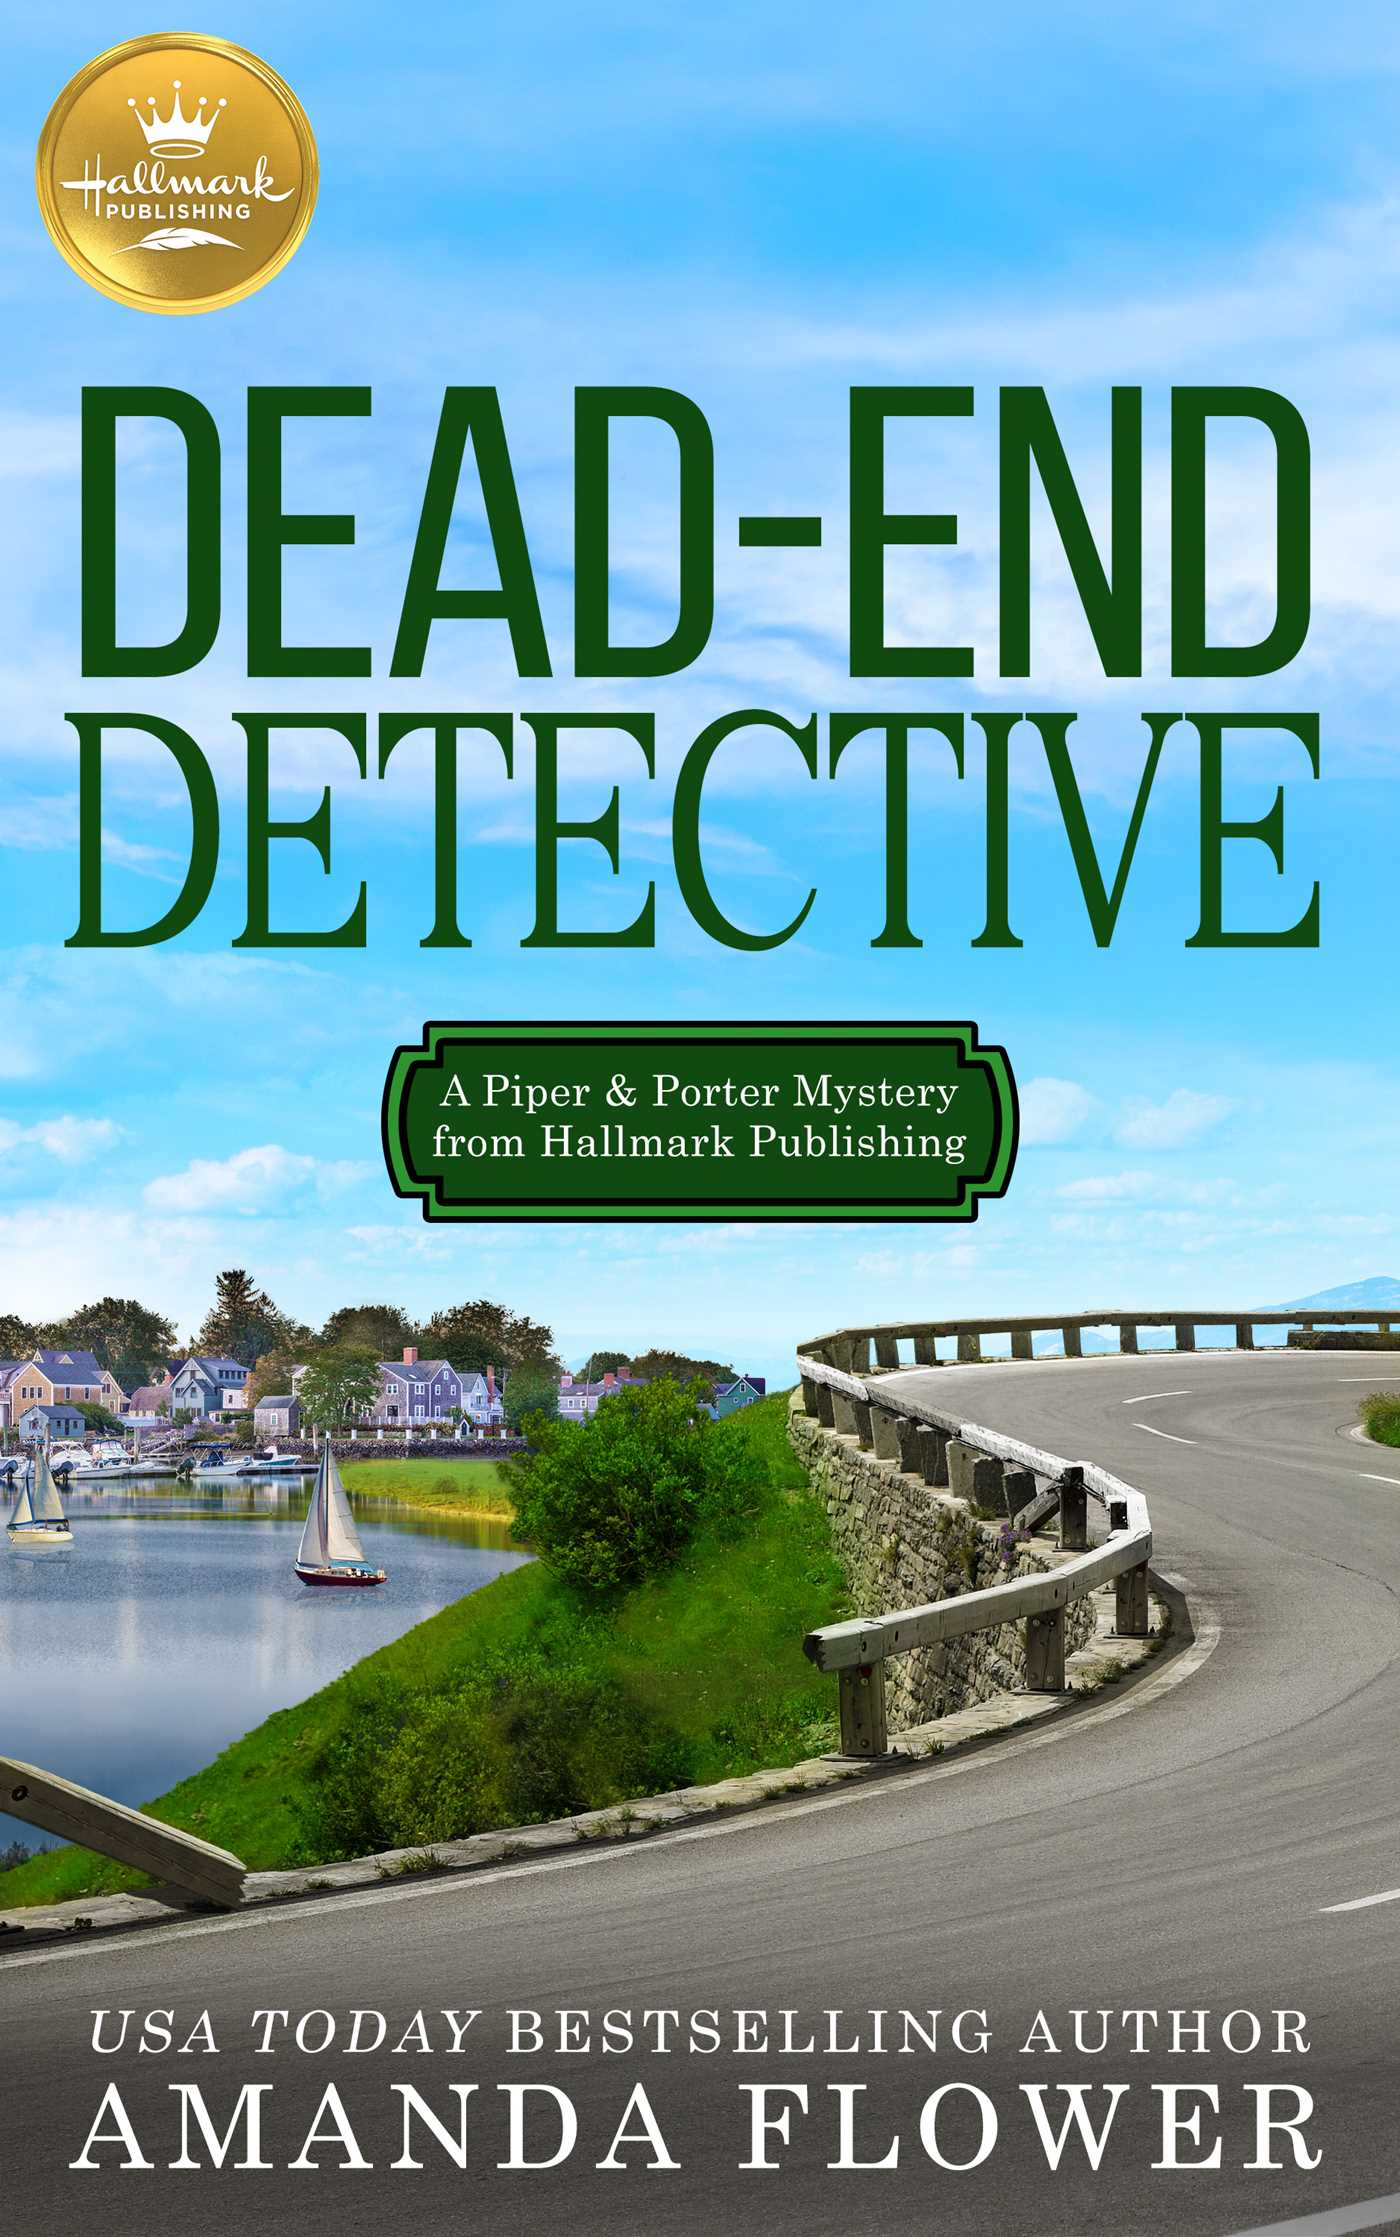 Dead-End Detective A Piper and Porter Mystery from Hallmark Publishing